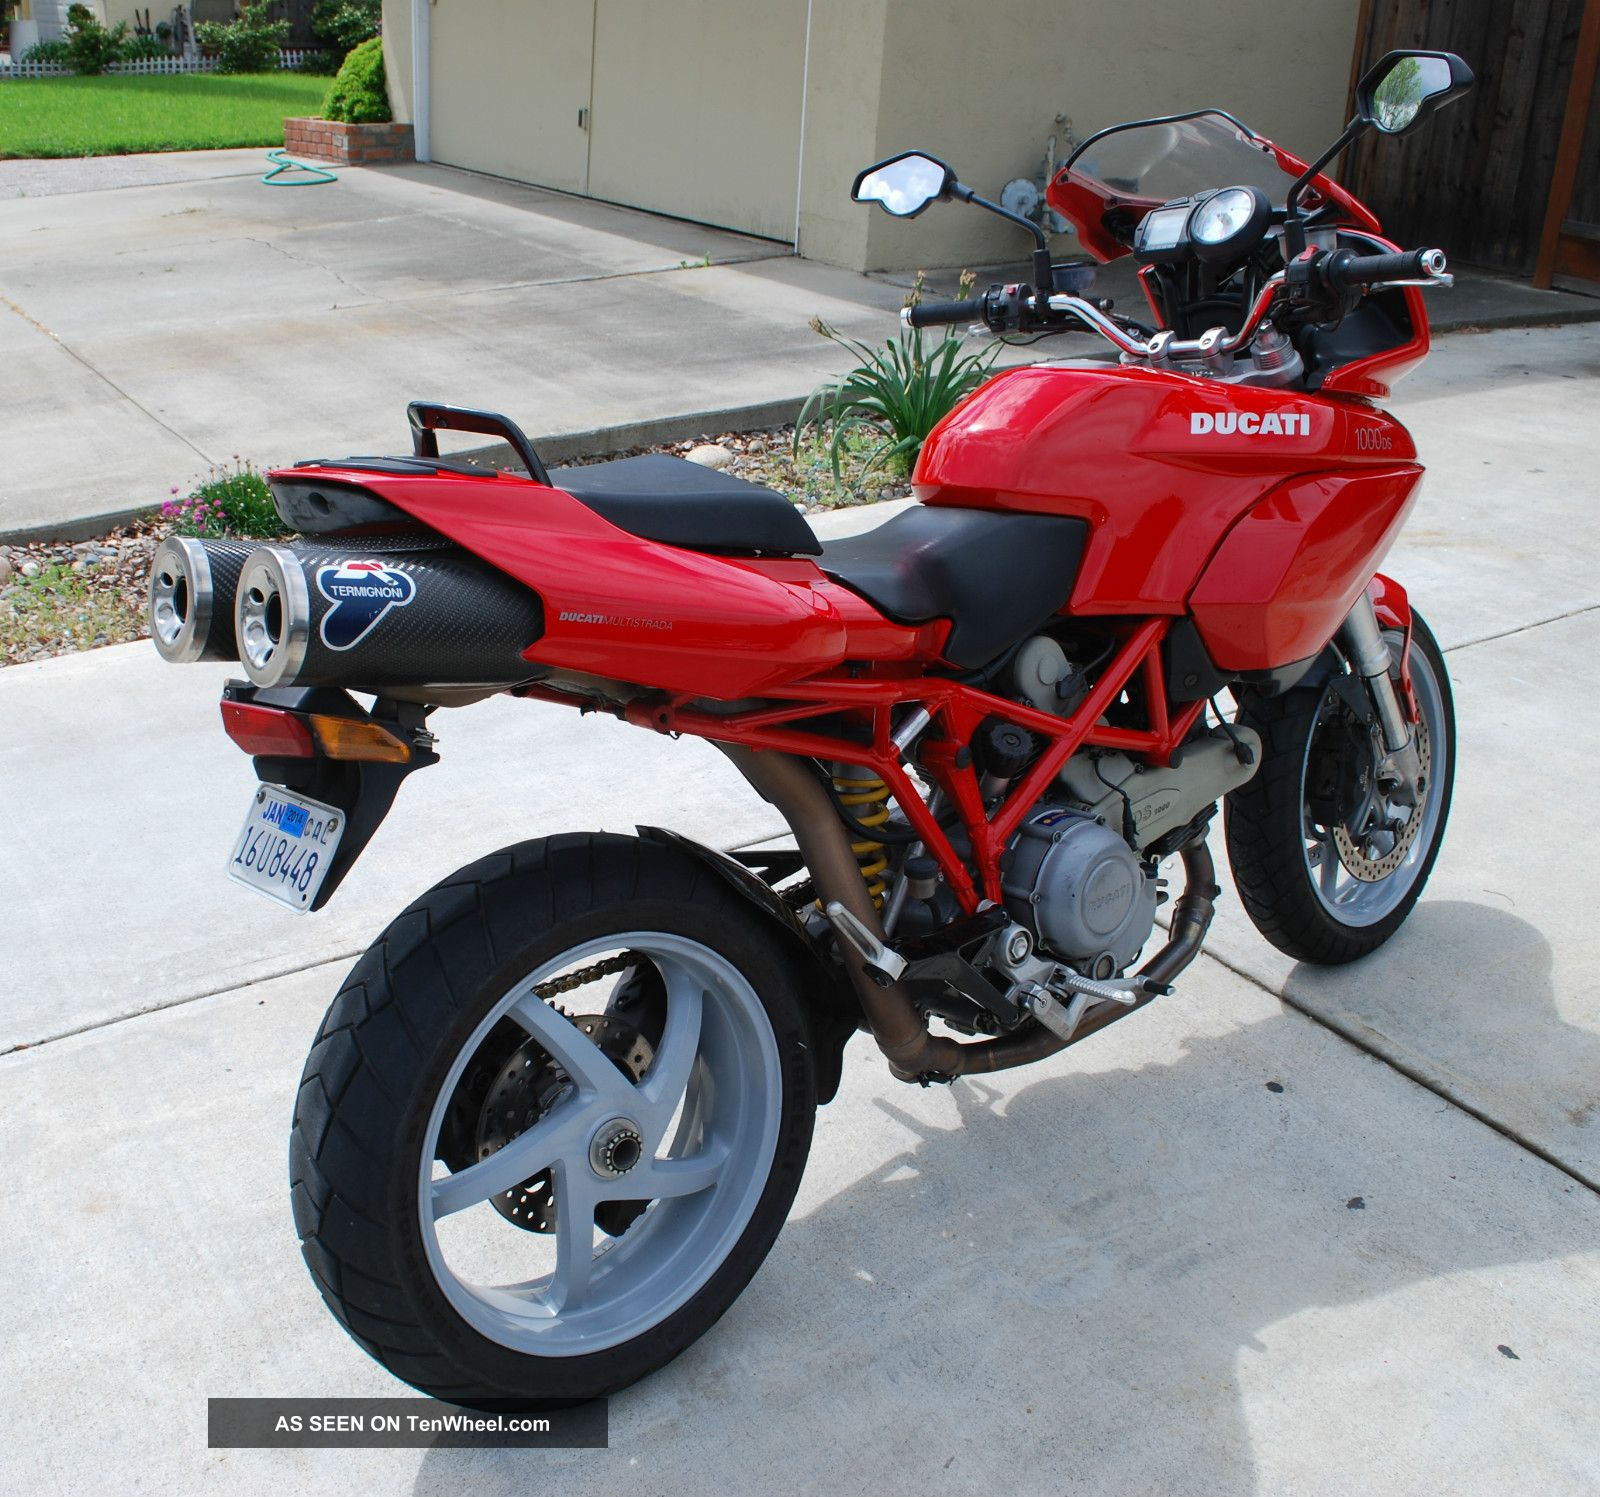 2004 ducati multistrada 1000 ds moto zombdrive com. Black Bedroom Furniture Sets. Home Design Ideas